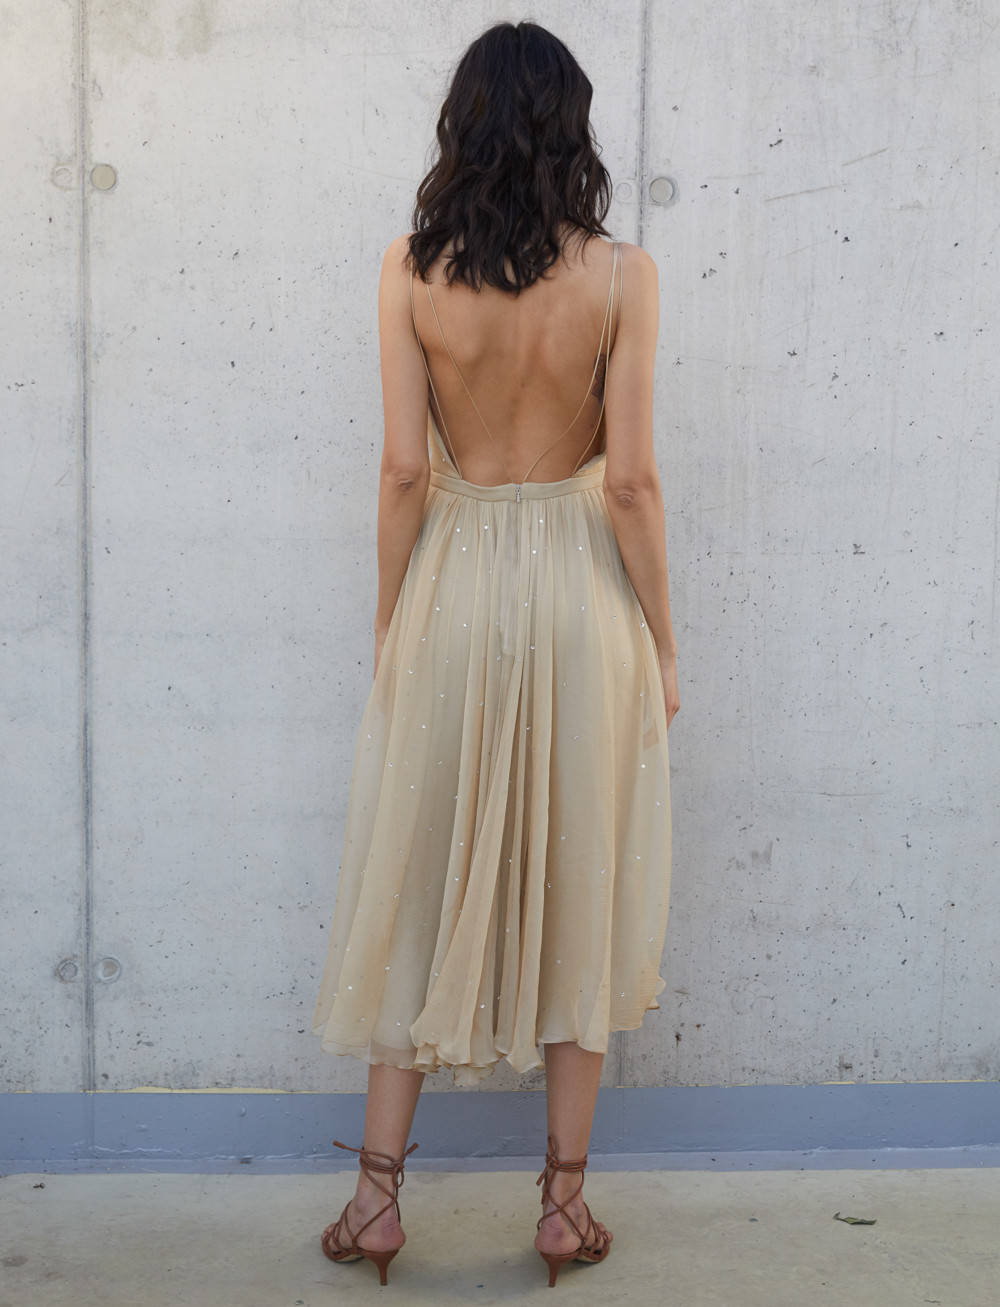 Lady Light Dress by Manurí on curated-crowd.com